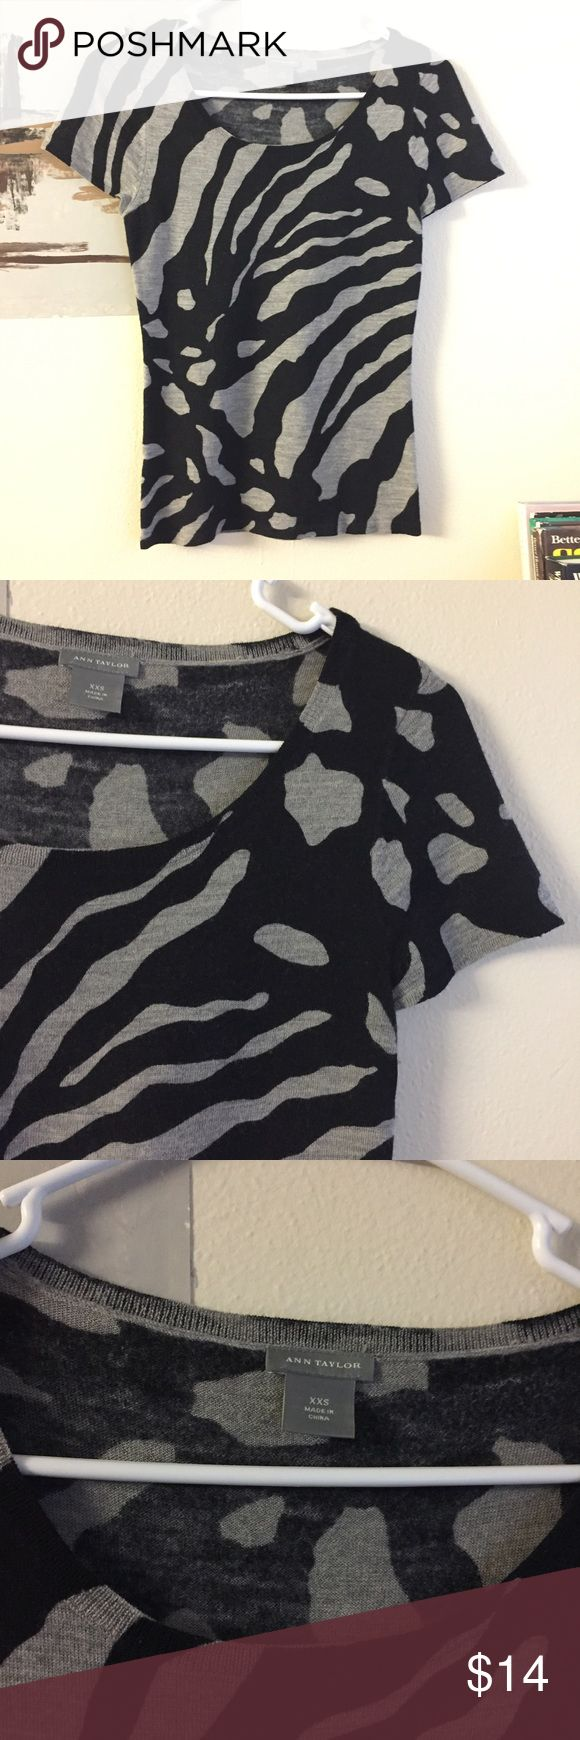 Ann Taylor zebra print black & grey women top In like new condition. Worn only a few times. No imperfections, peeling, holes or damage. Ask if have any questions. Ann Taylor Tops Tees - Short Sleeve